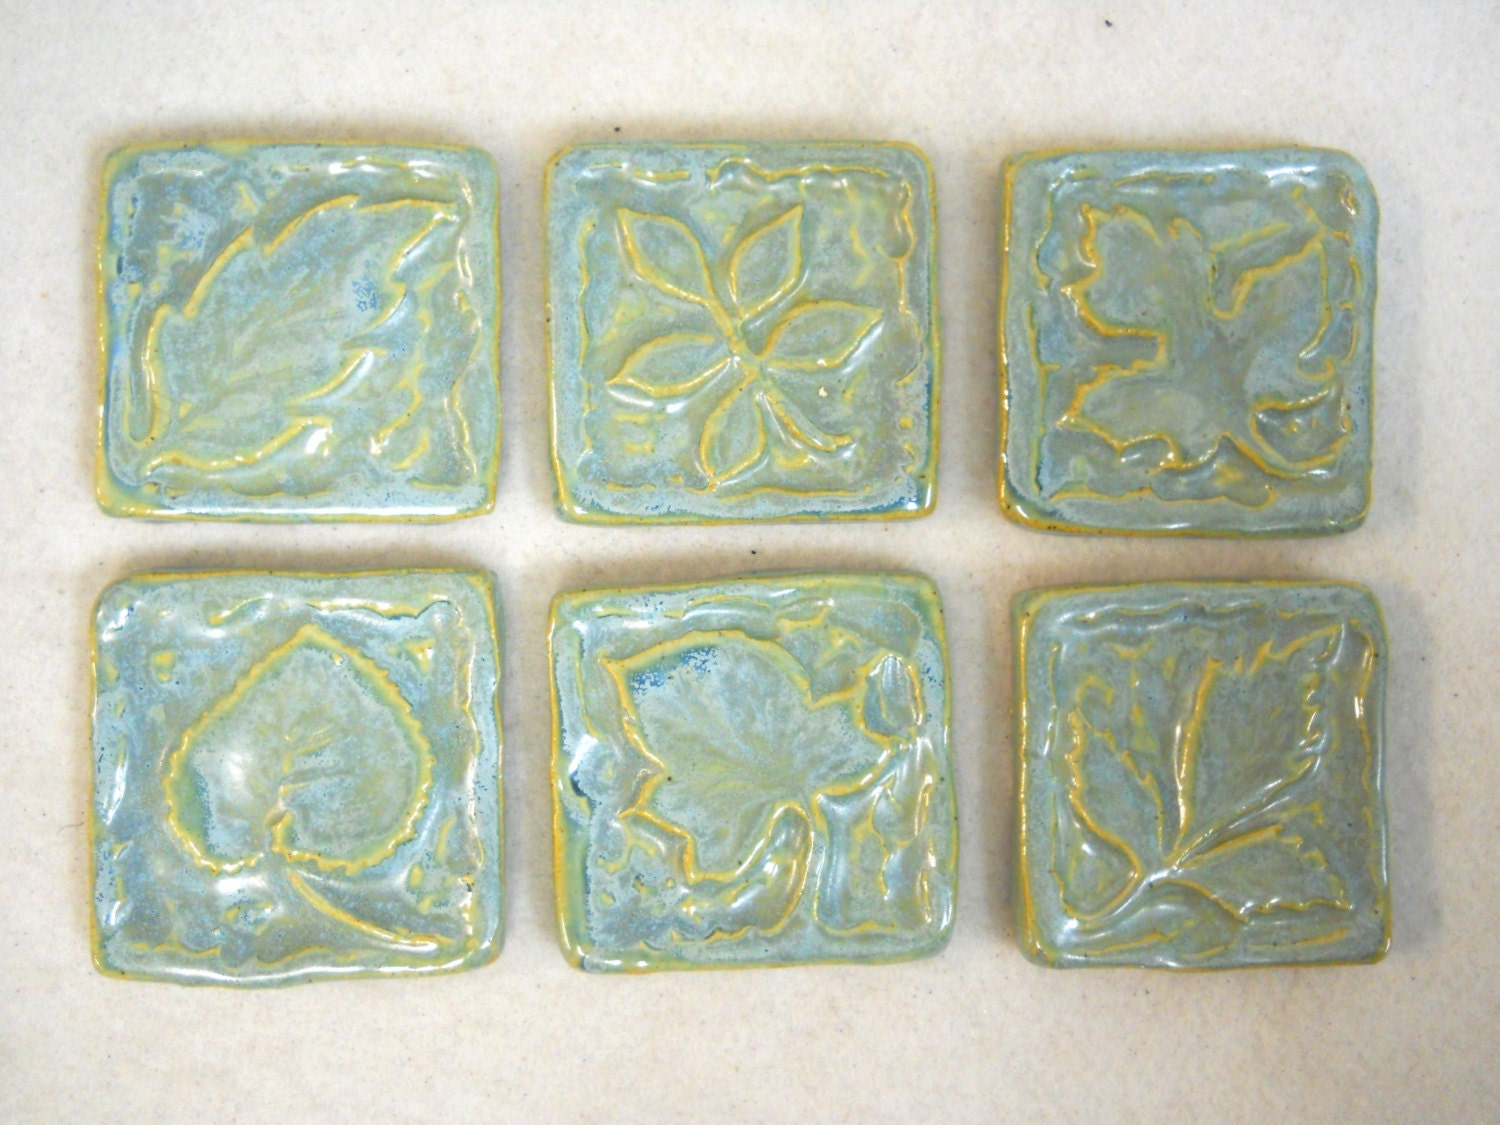 Handmade Ceramic Tiles Decorative Leaf Patterns Sky Blue